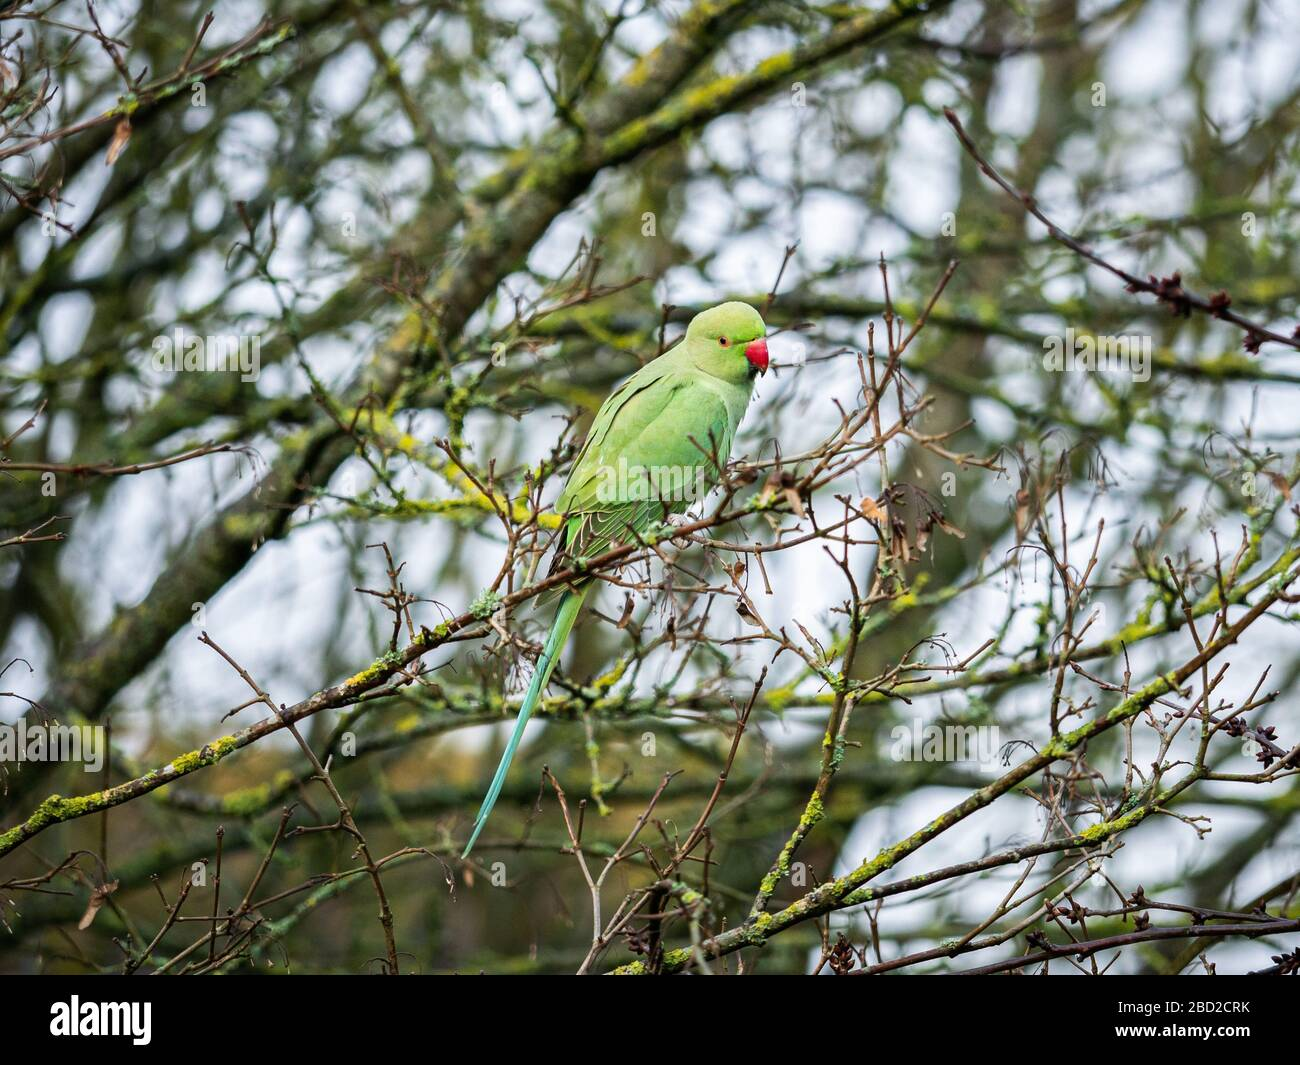 A feral parakeet (Psittacula krameri) seen in a tree at the Beddington Farmlands Nature Reserve, Sutton, London. Stock Photo